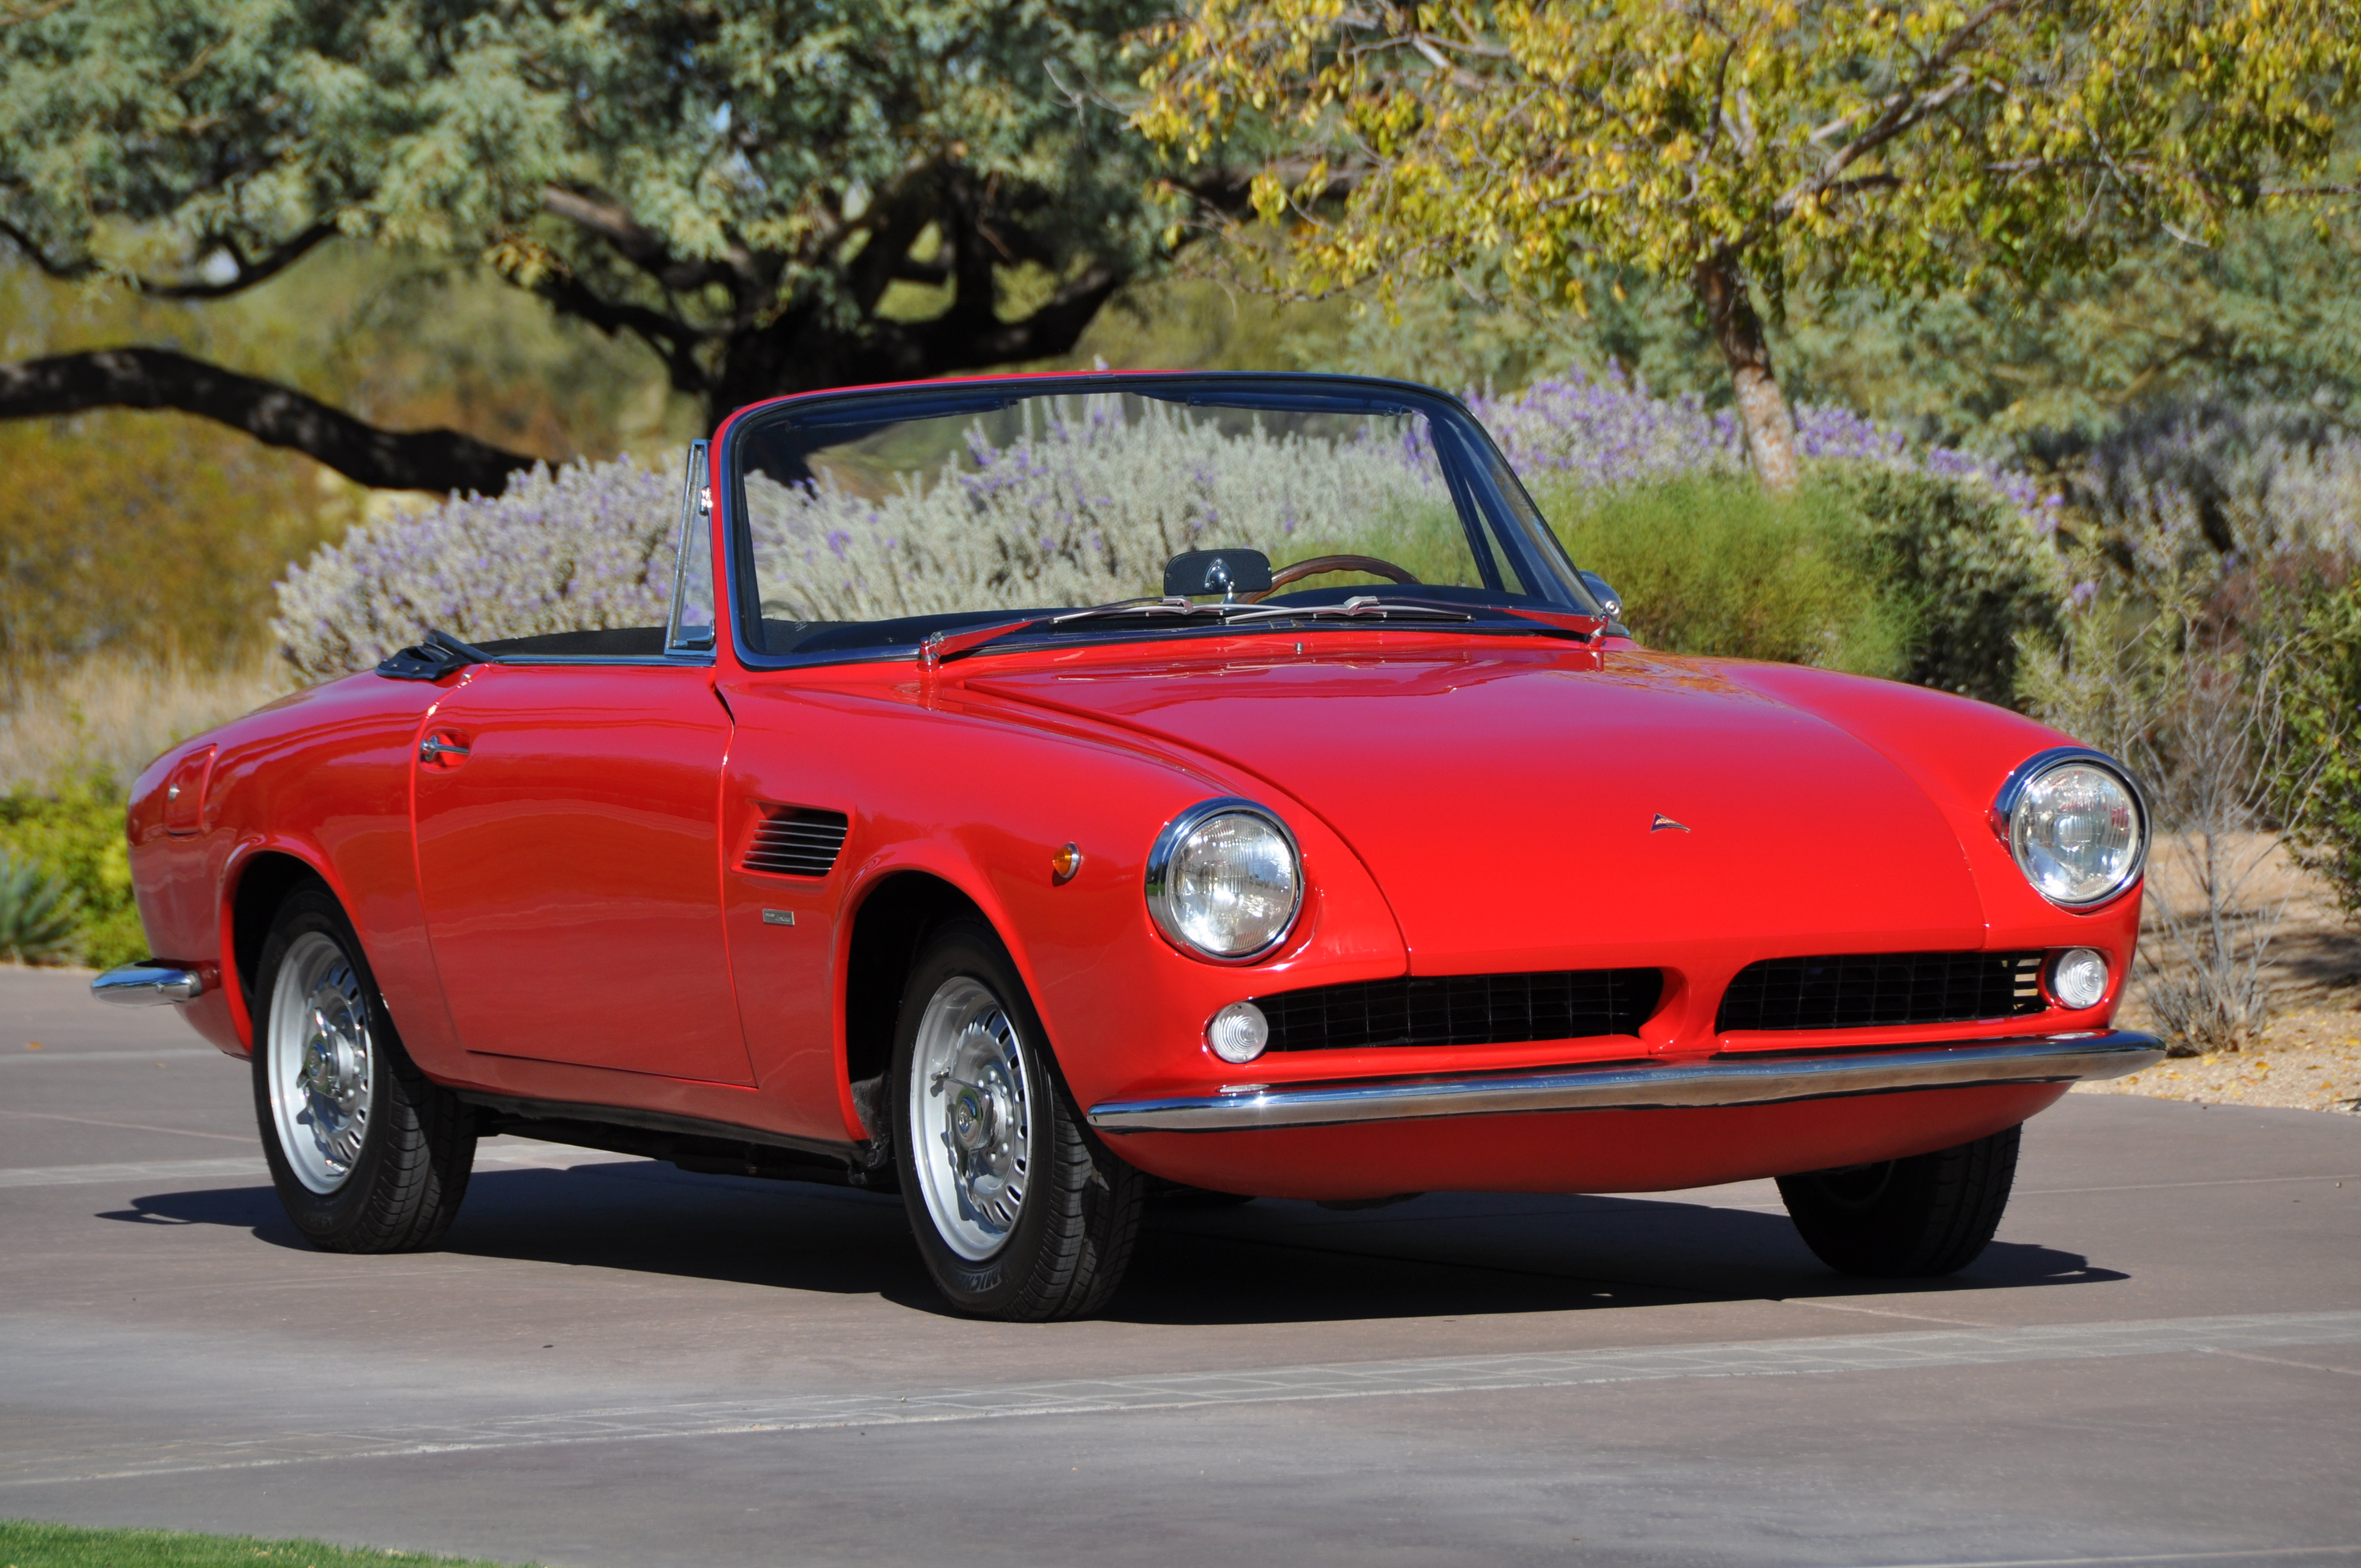 'Ferrarini' ASA Spider on Russo and Steele Scottsdale docket